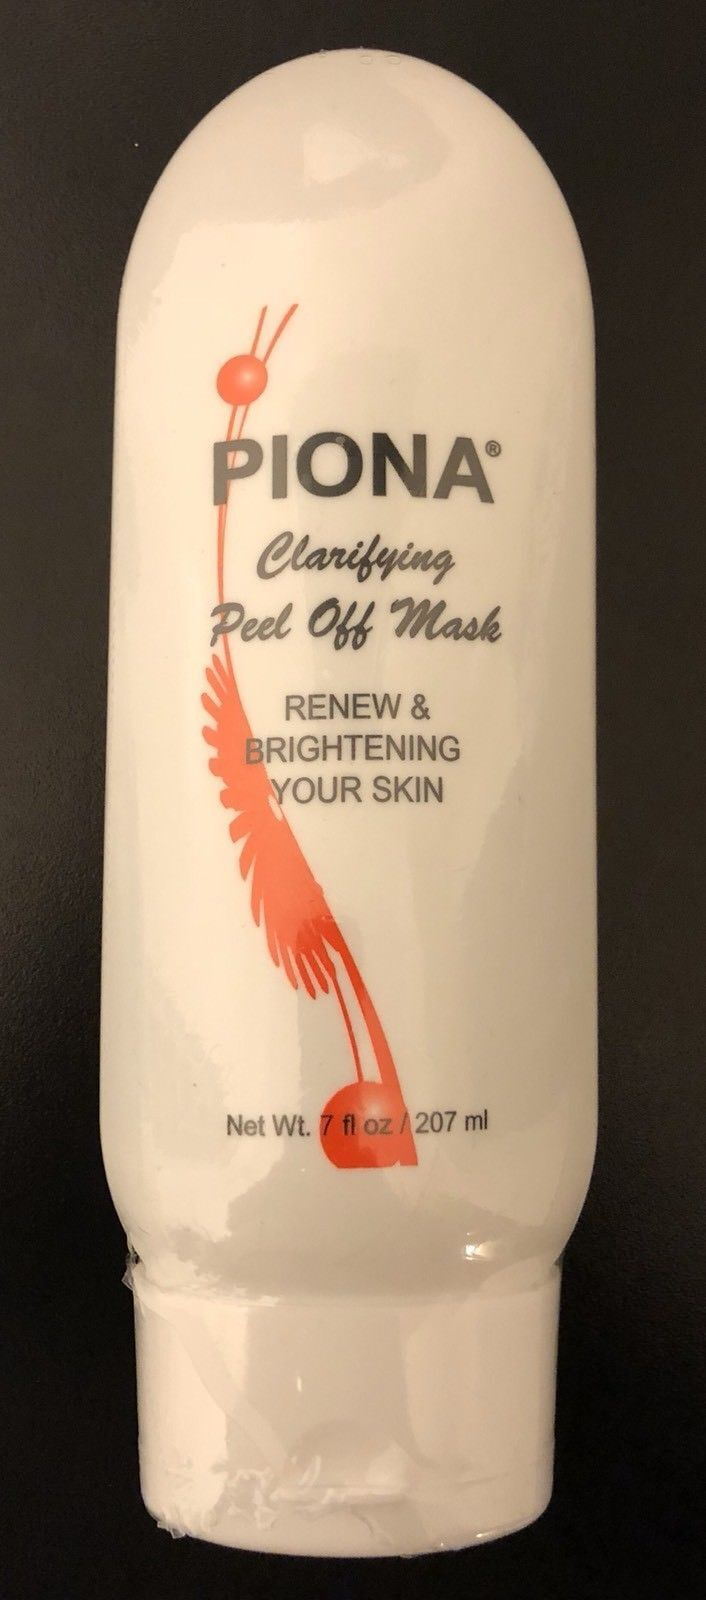 Piona Clarifying Peel Off Mask For Renew and Brightening 7oz Health & Beauty